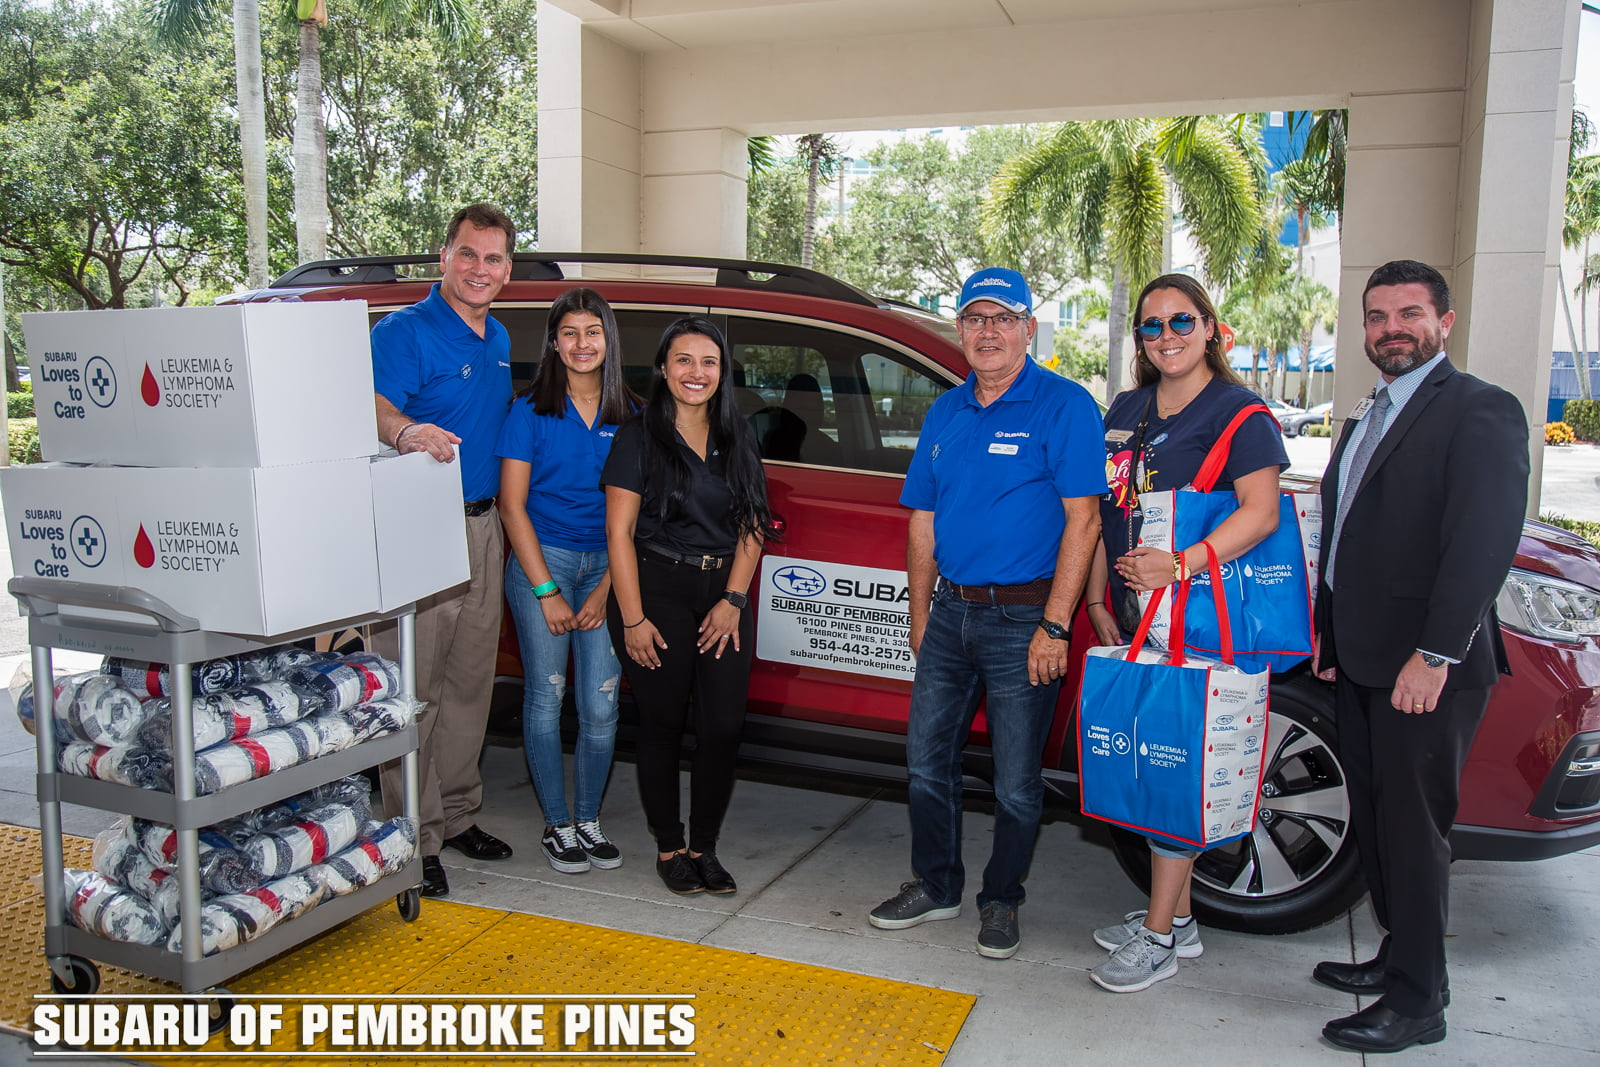 Subaru of Pembroke Pines and the Leukemia & Lymphoma Society Continue to Spread Hope and Warmth to Pediatric and Adult Cancer Patients Throughout Broward County Area Hospitals